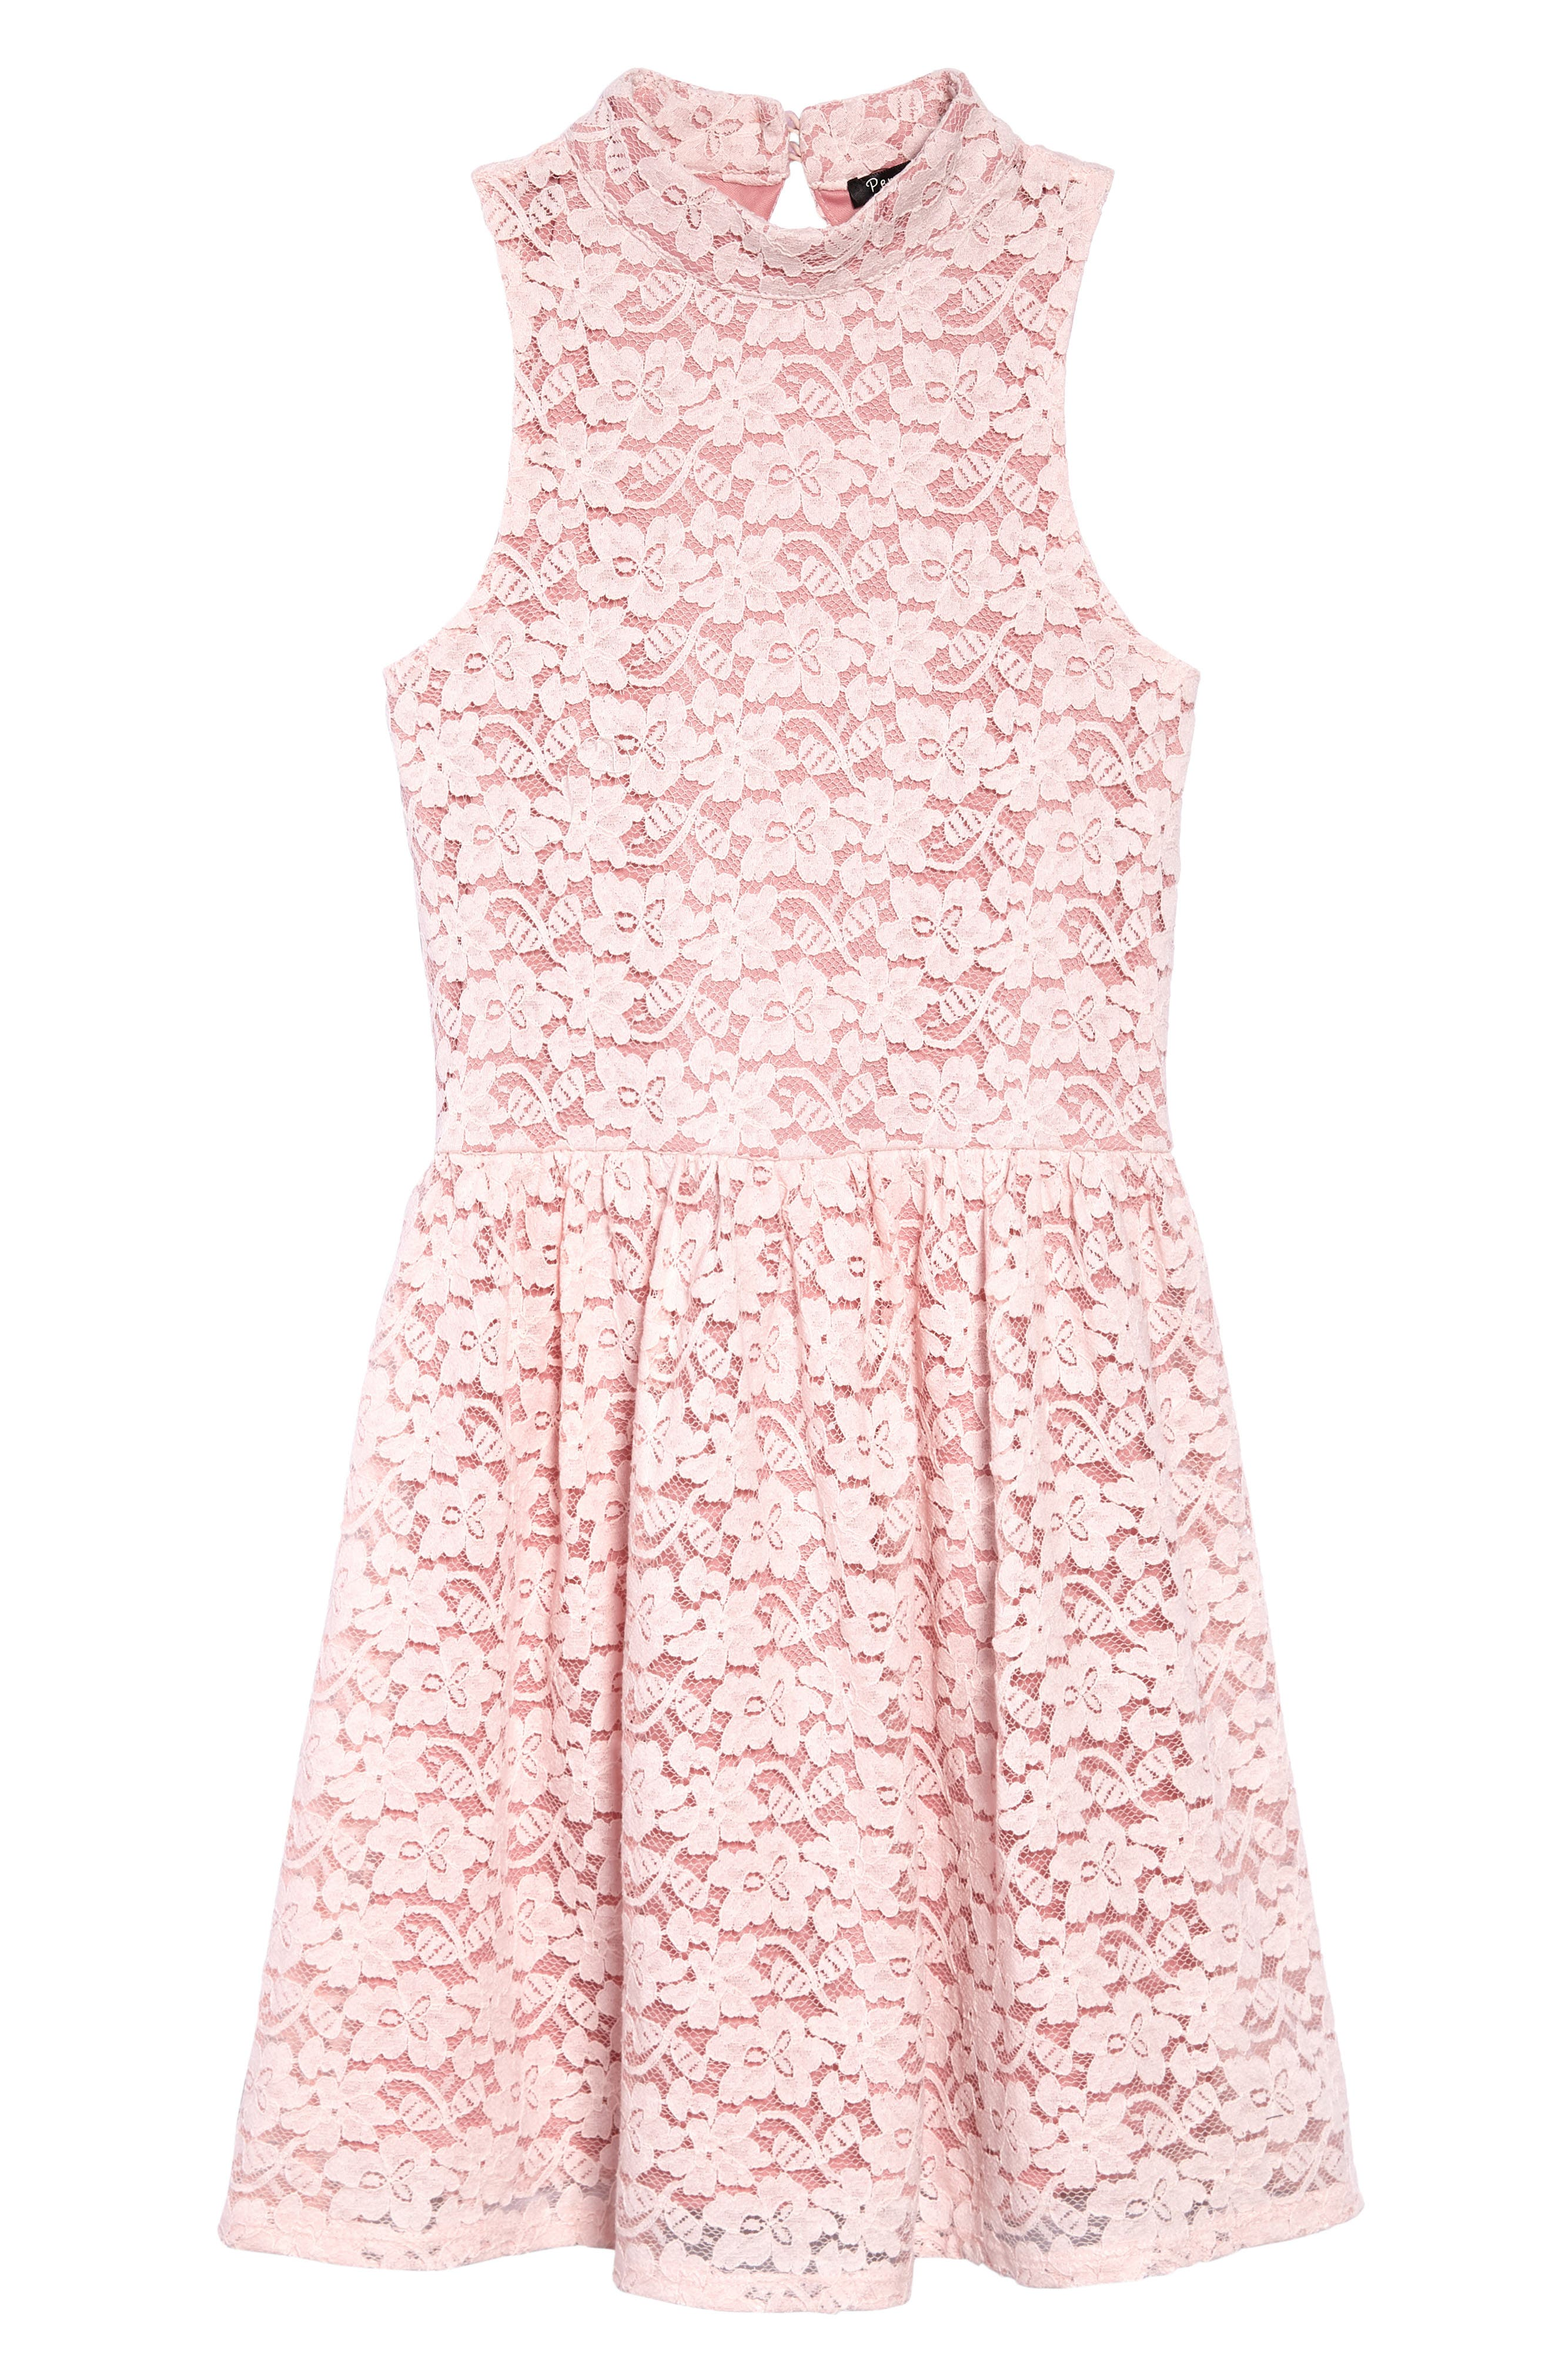 Hailee Lace Dress,                             Main thumbnail 1, color,                             Pink